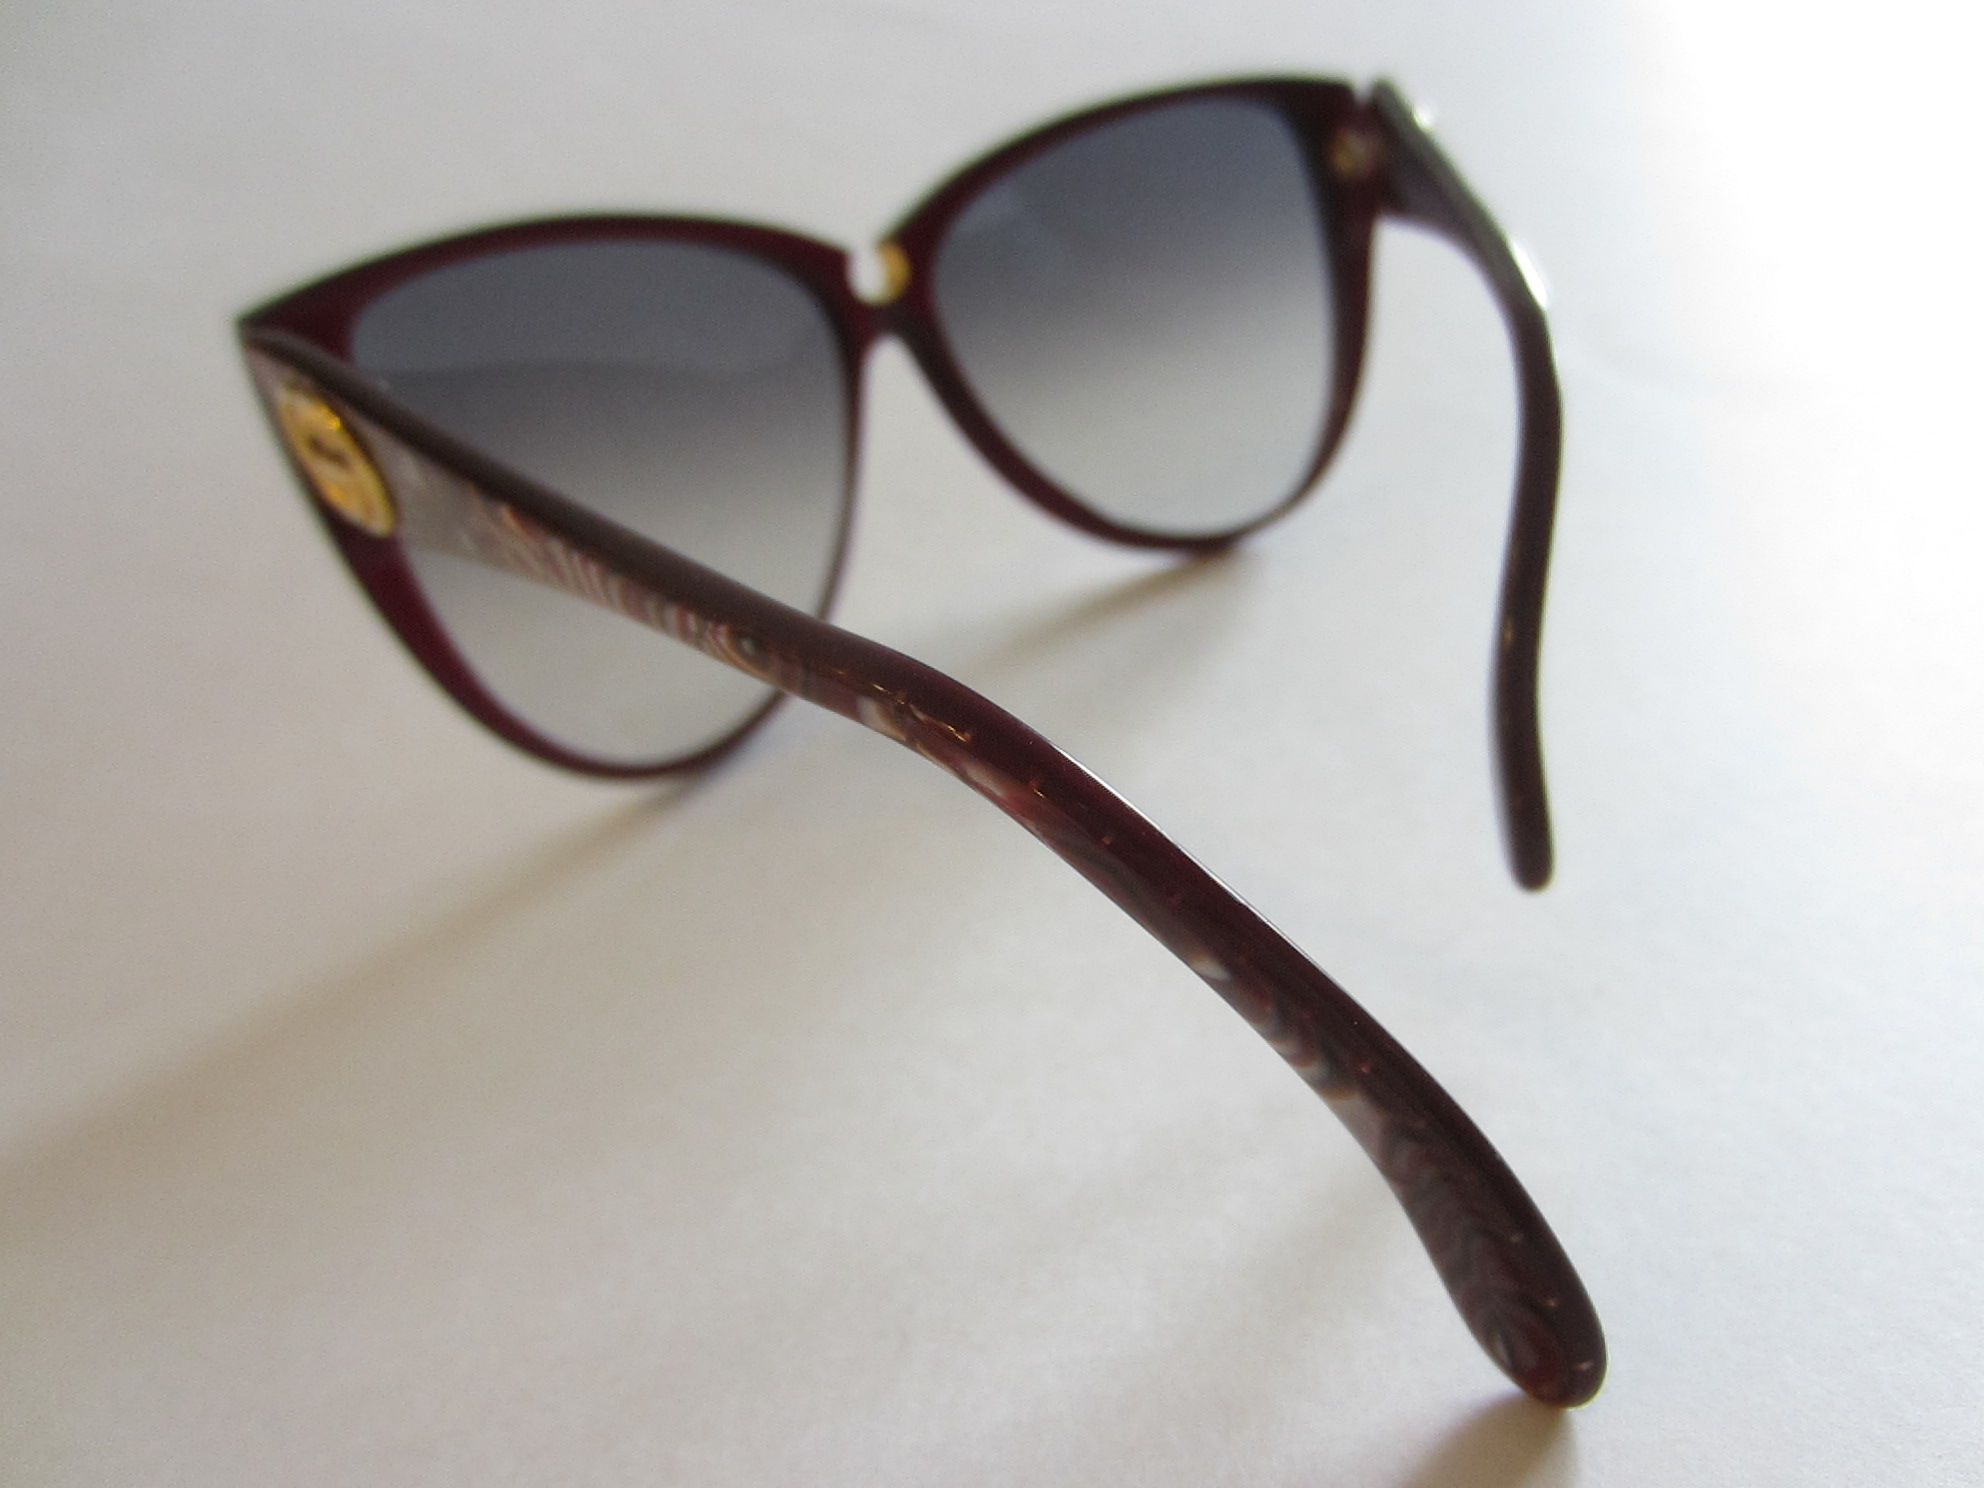 a61b8084058fd Gucci cat eye sunglasses mother of pearl